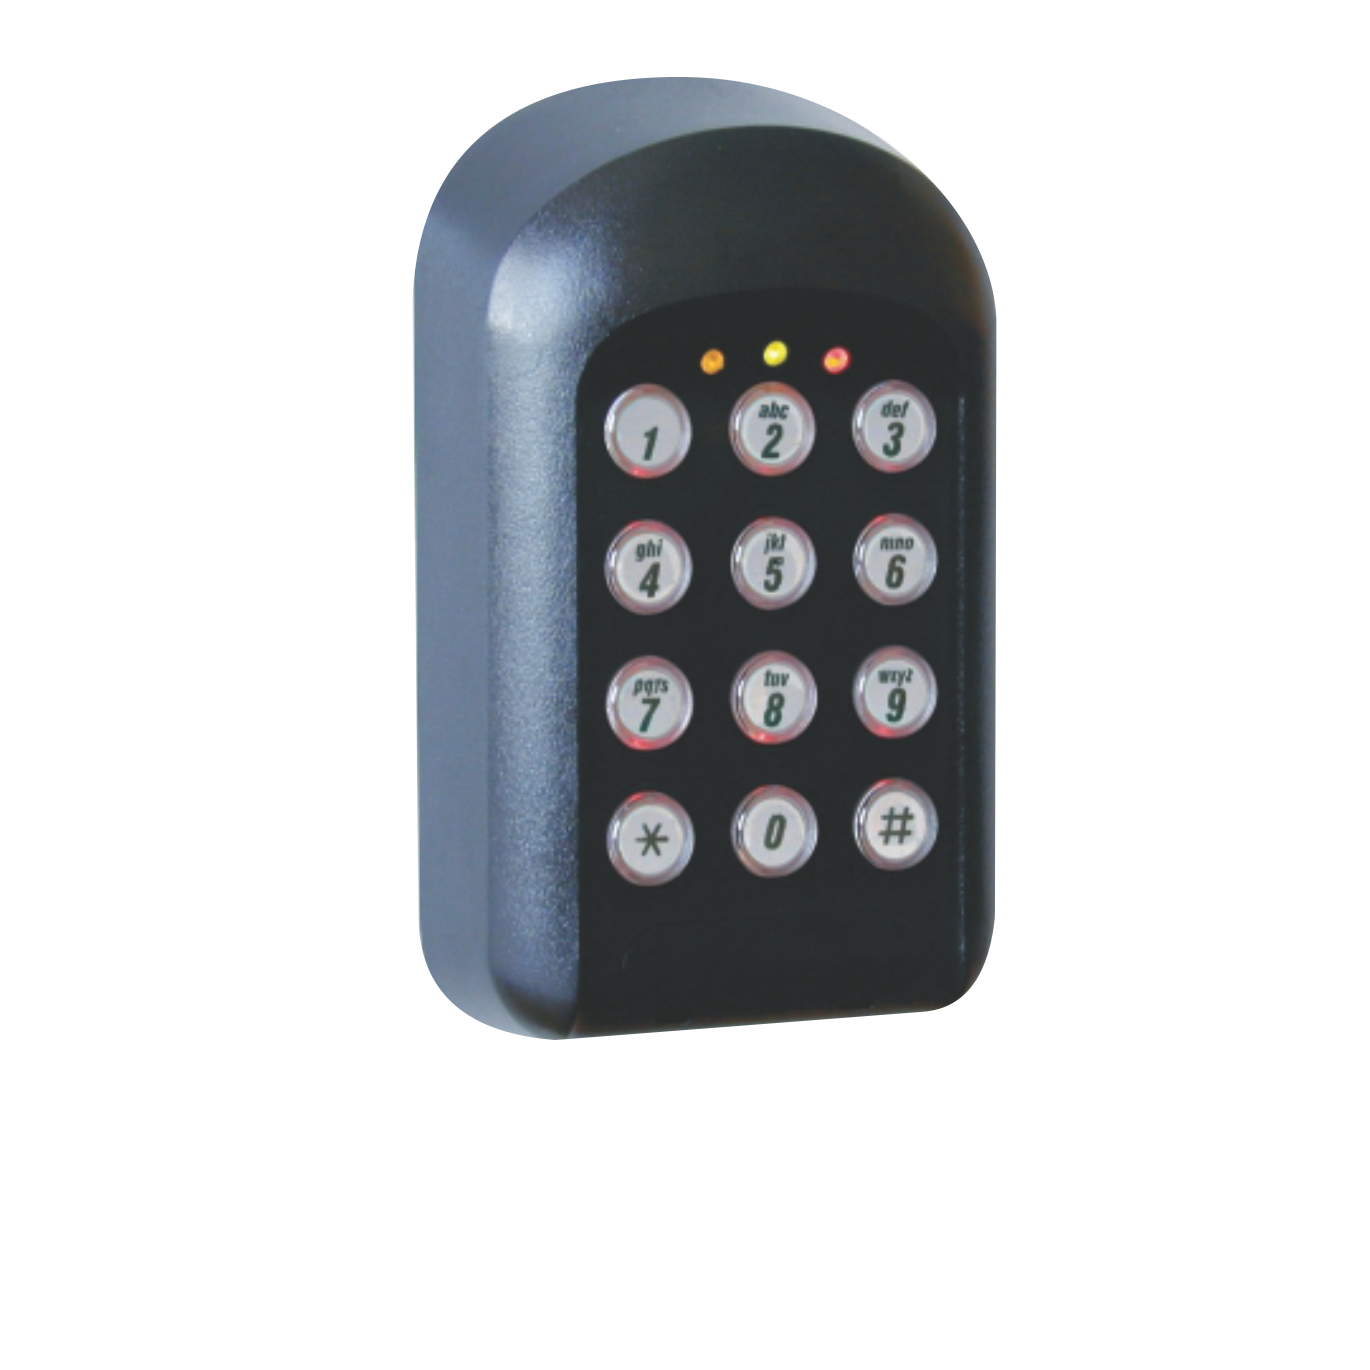 Alarm Security services